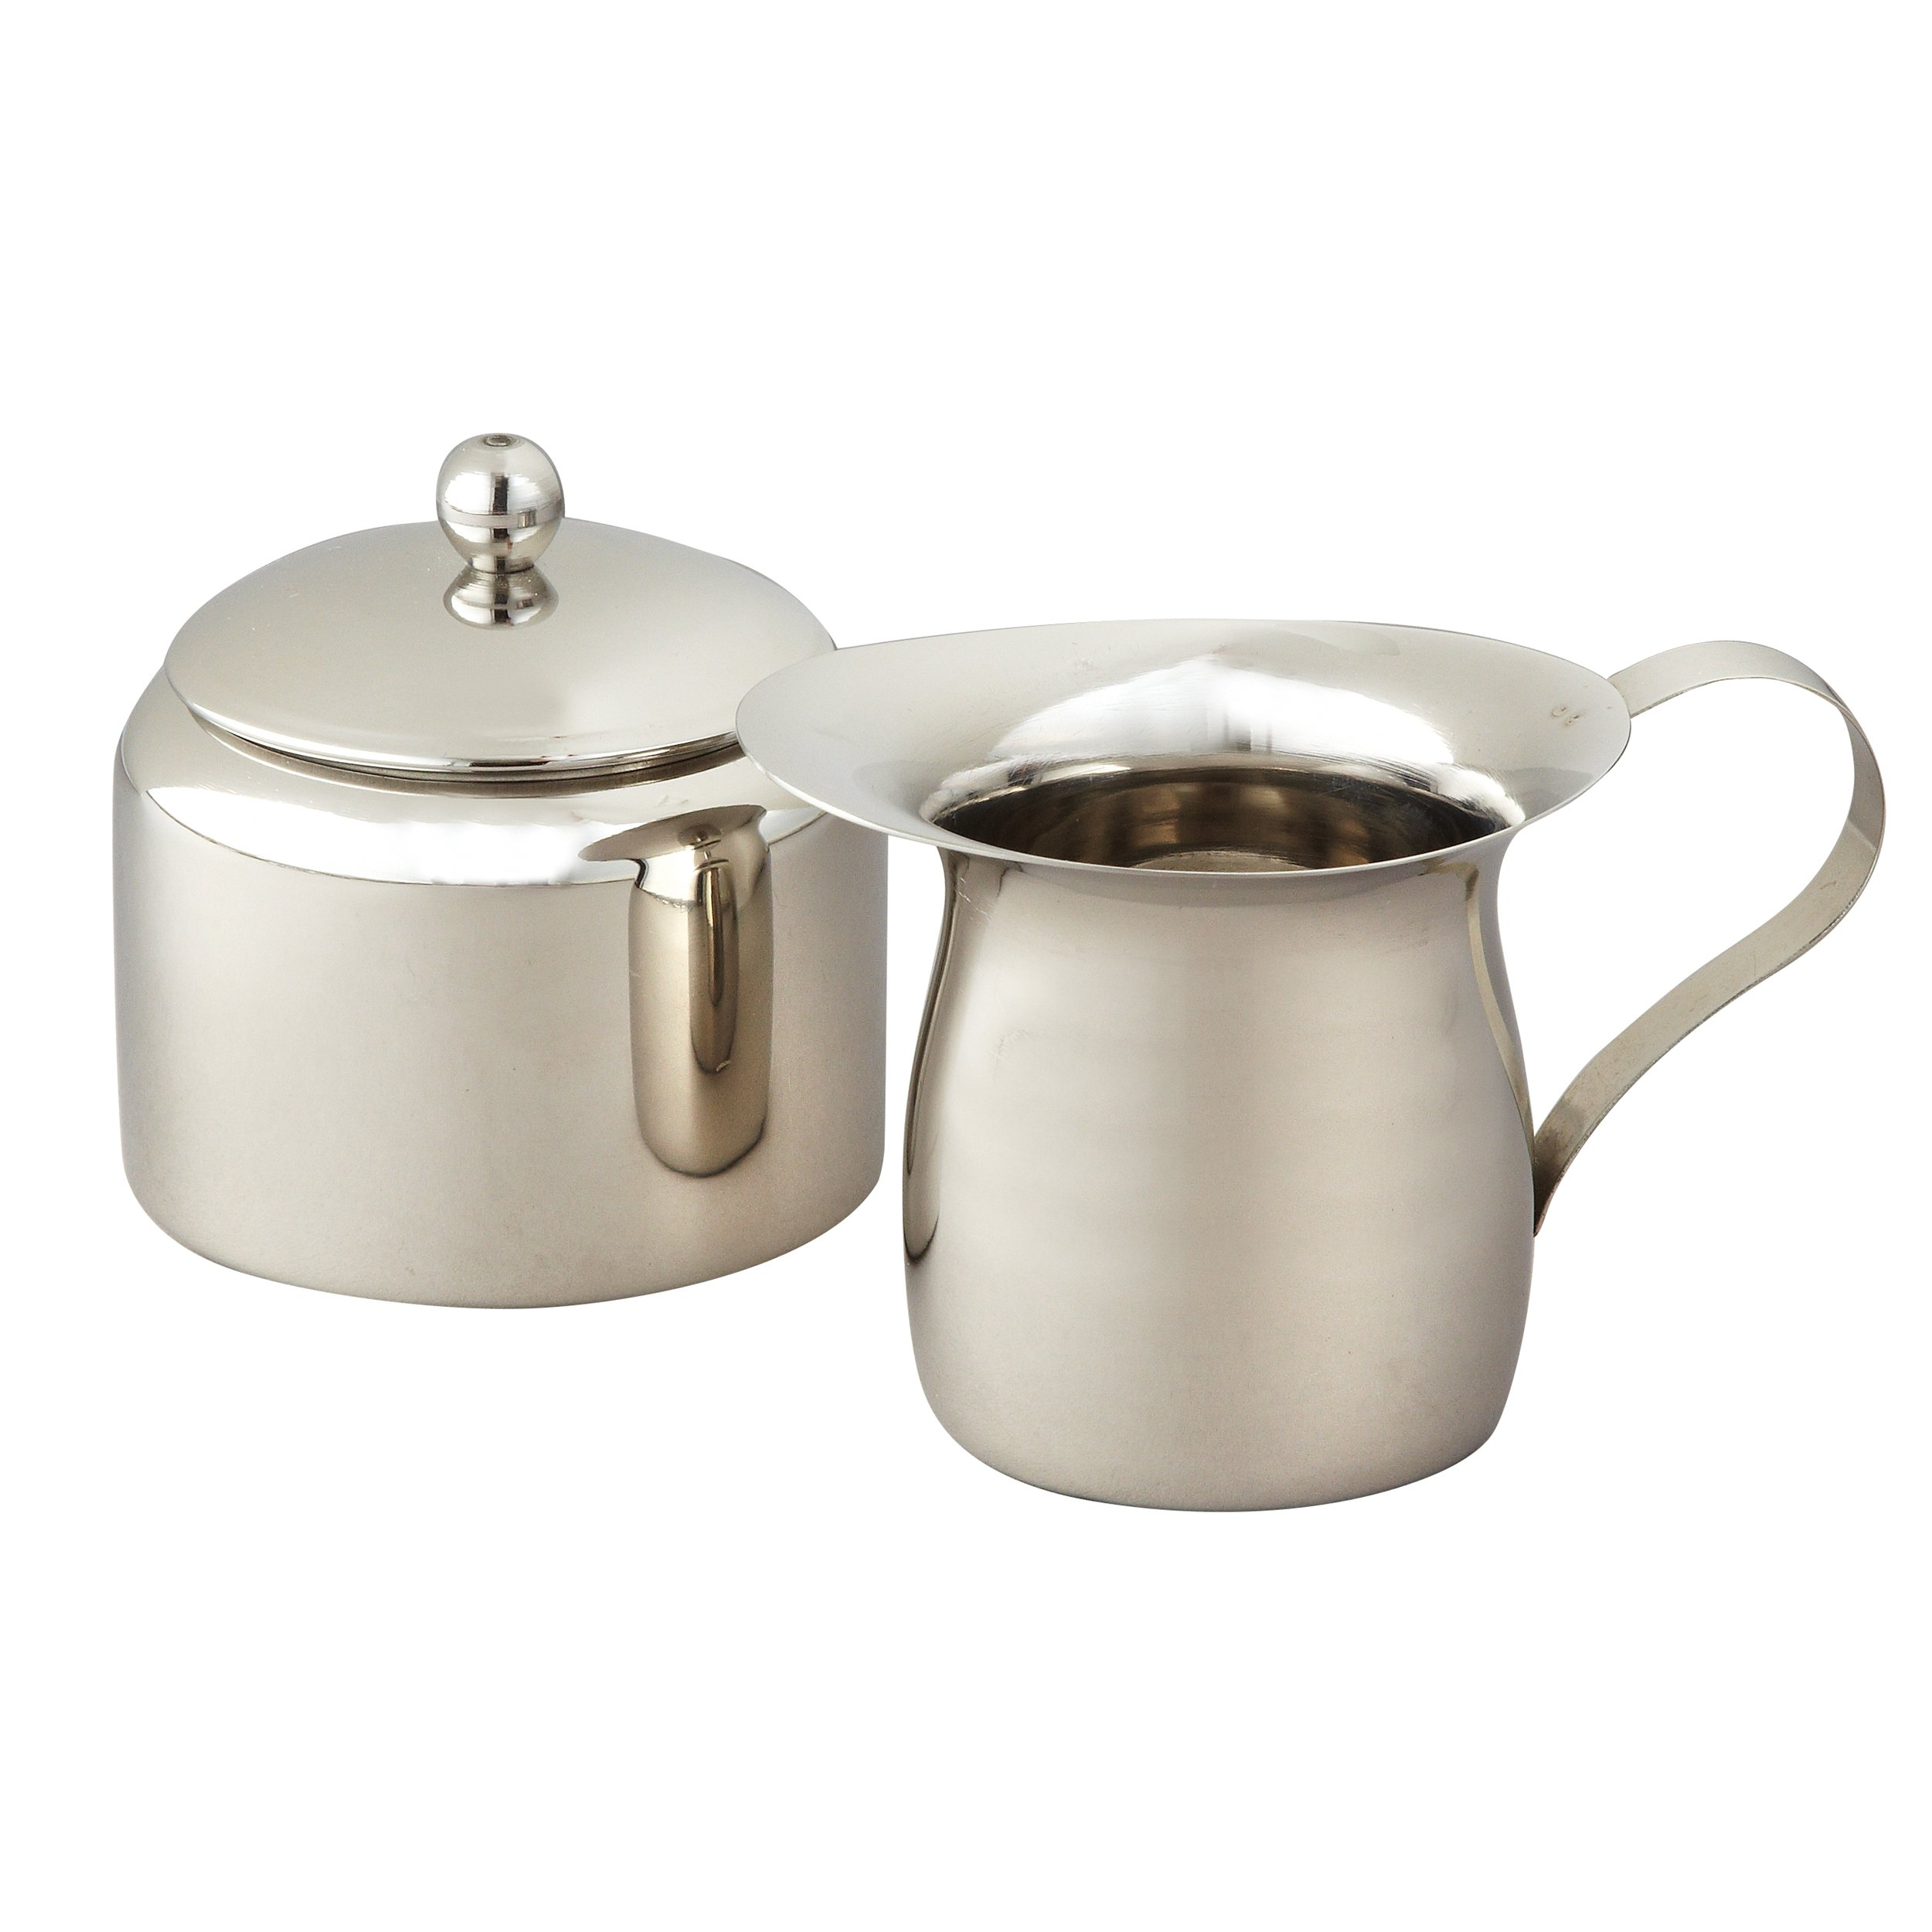 Elegance Stainless Steel Small Sugar Bowl and Creamer Set, Silver